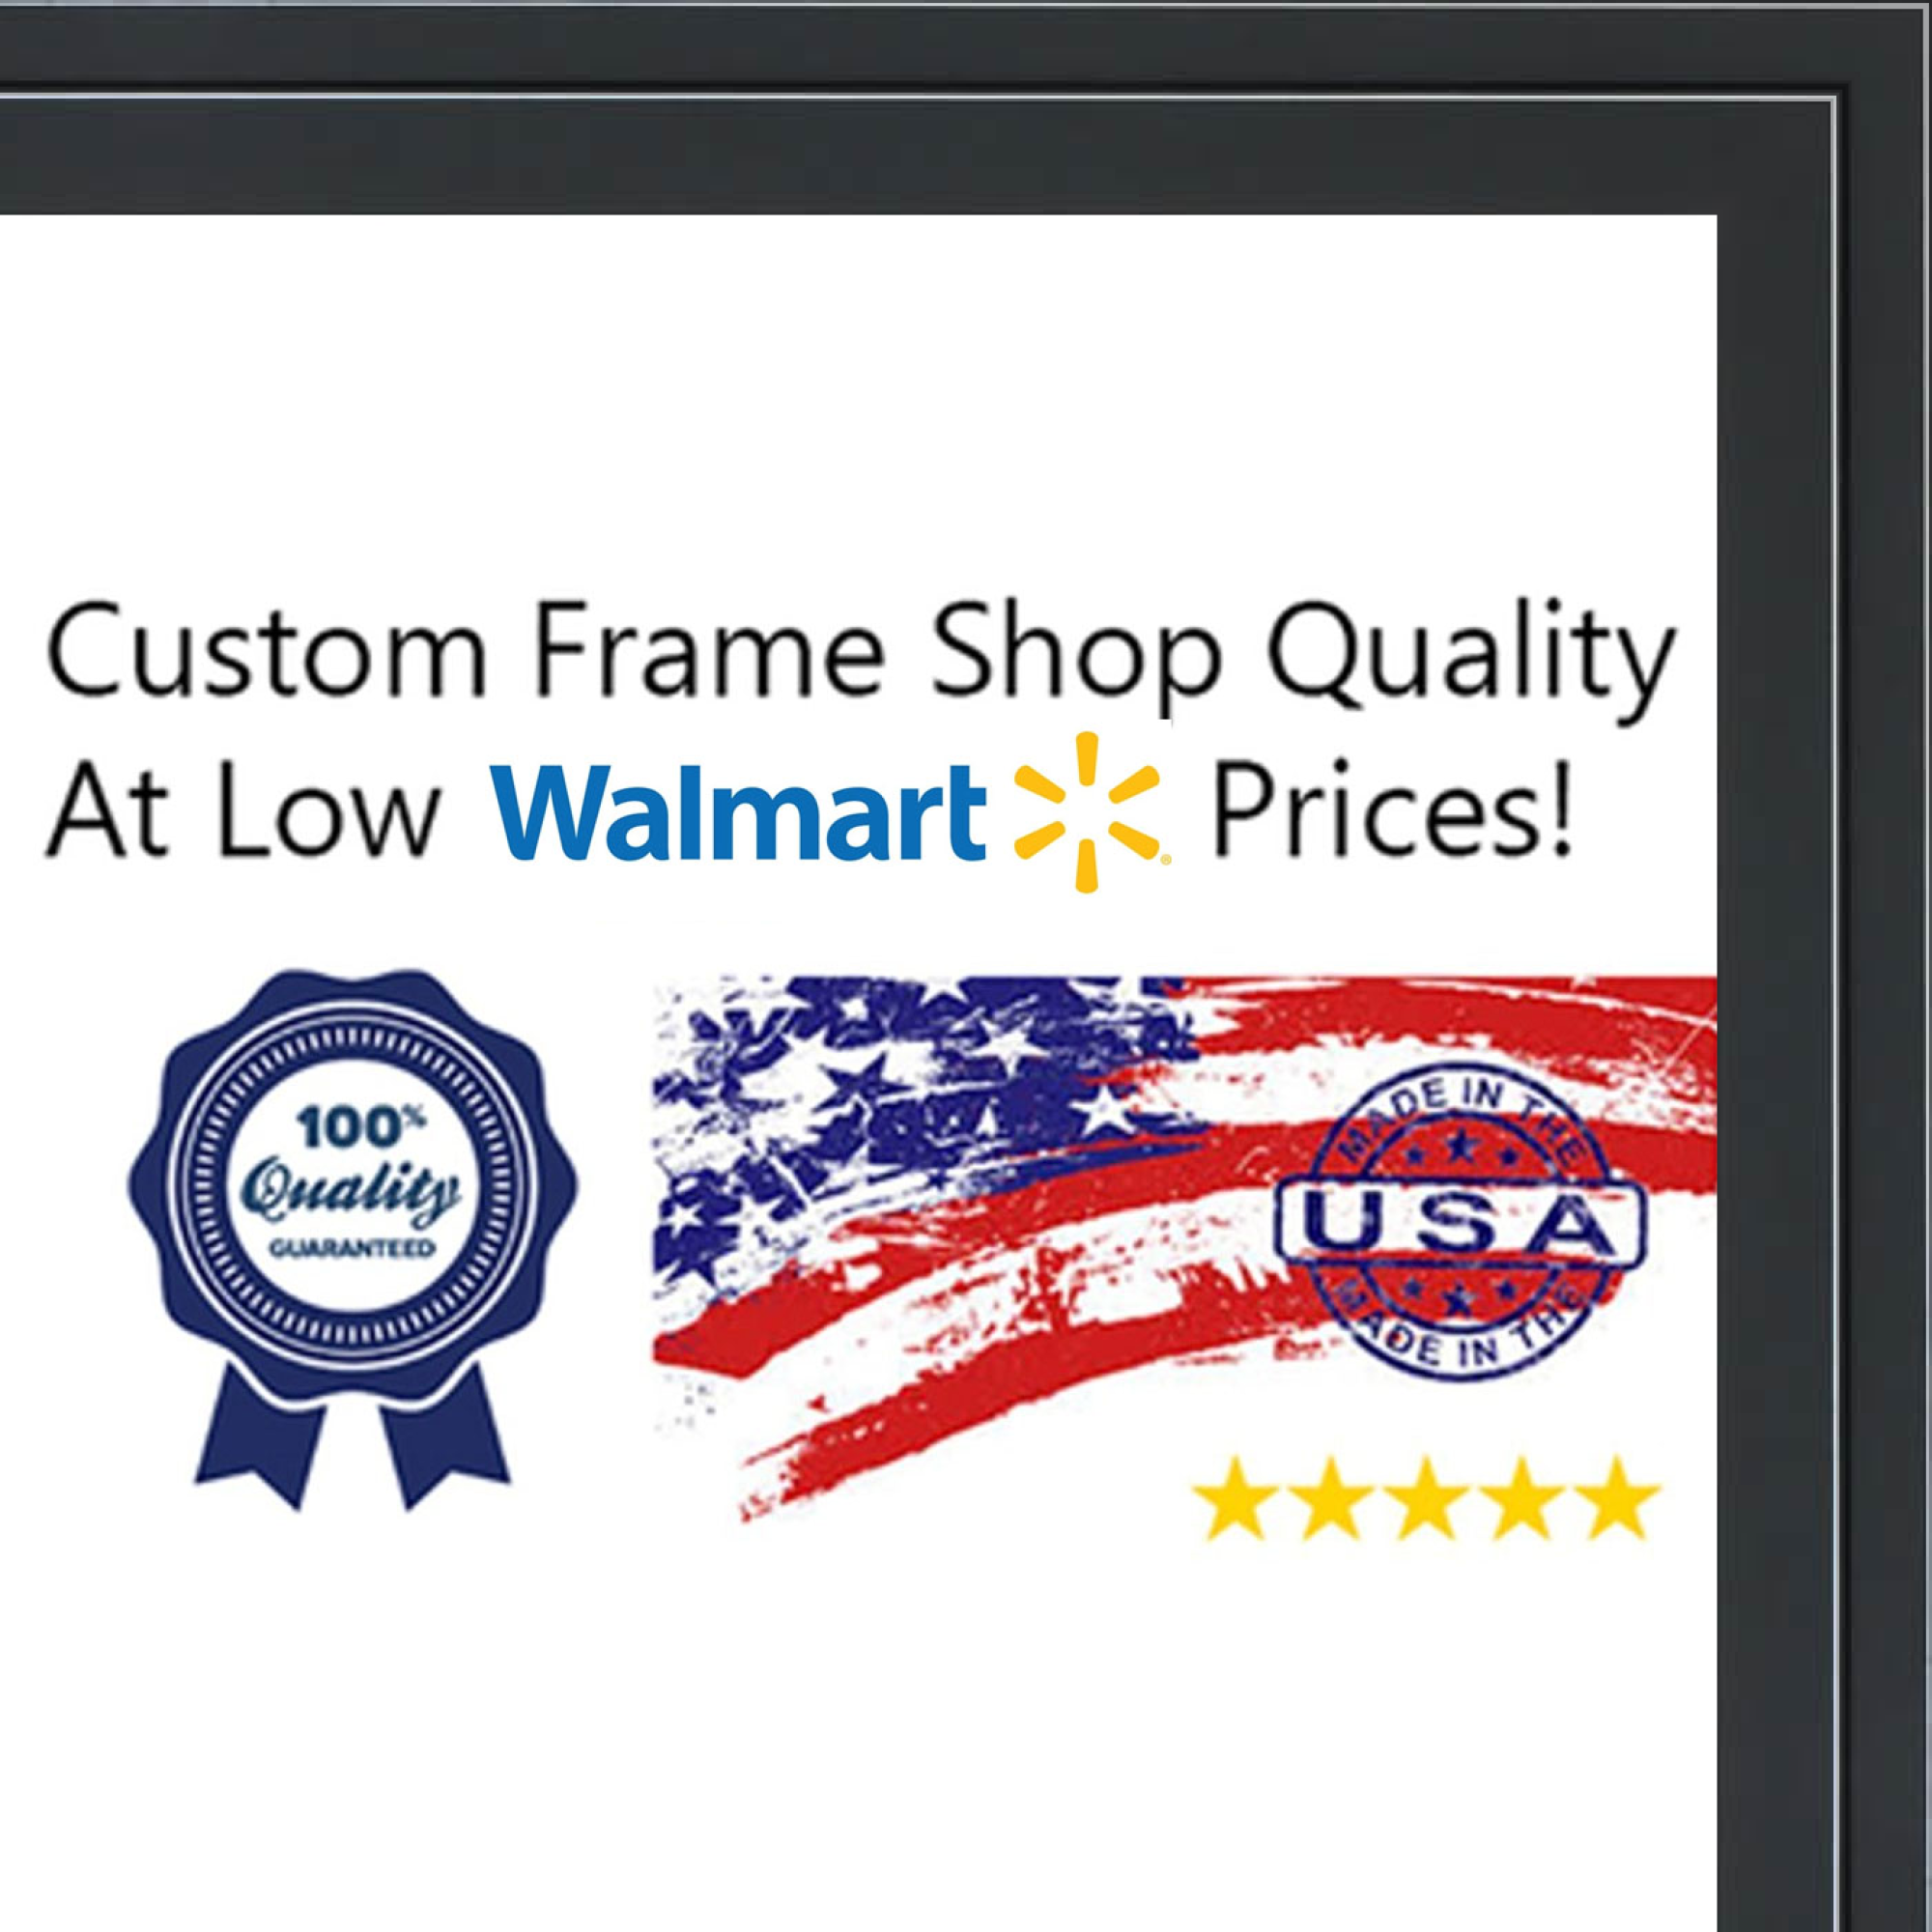 26x34 - 26 x 34 Black and Silver Pinstripe Solid Wood Frame with UV Framer's Acrylic & Foam Board Backing - Great F